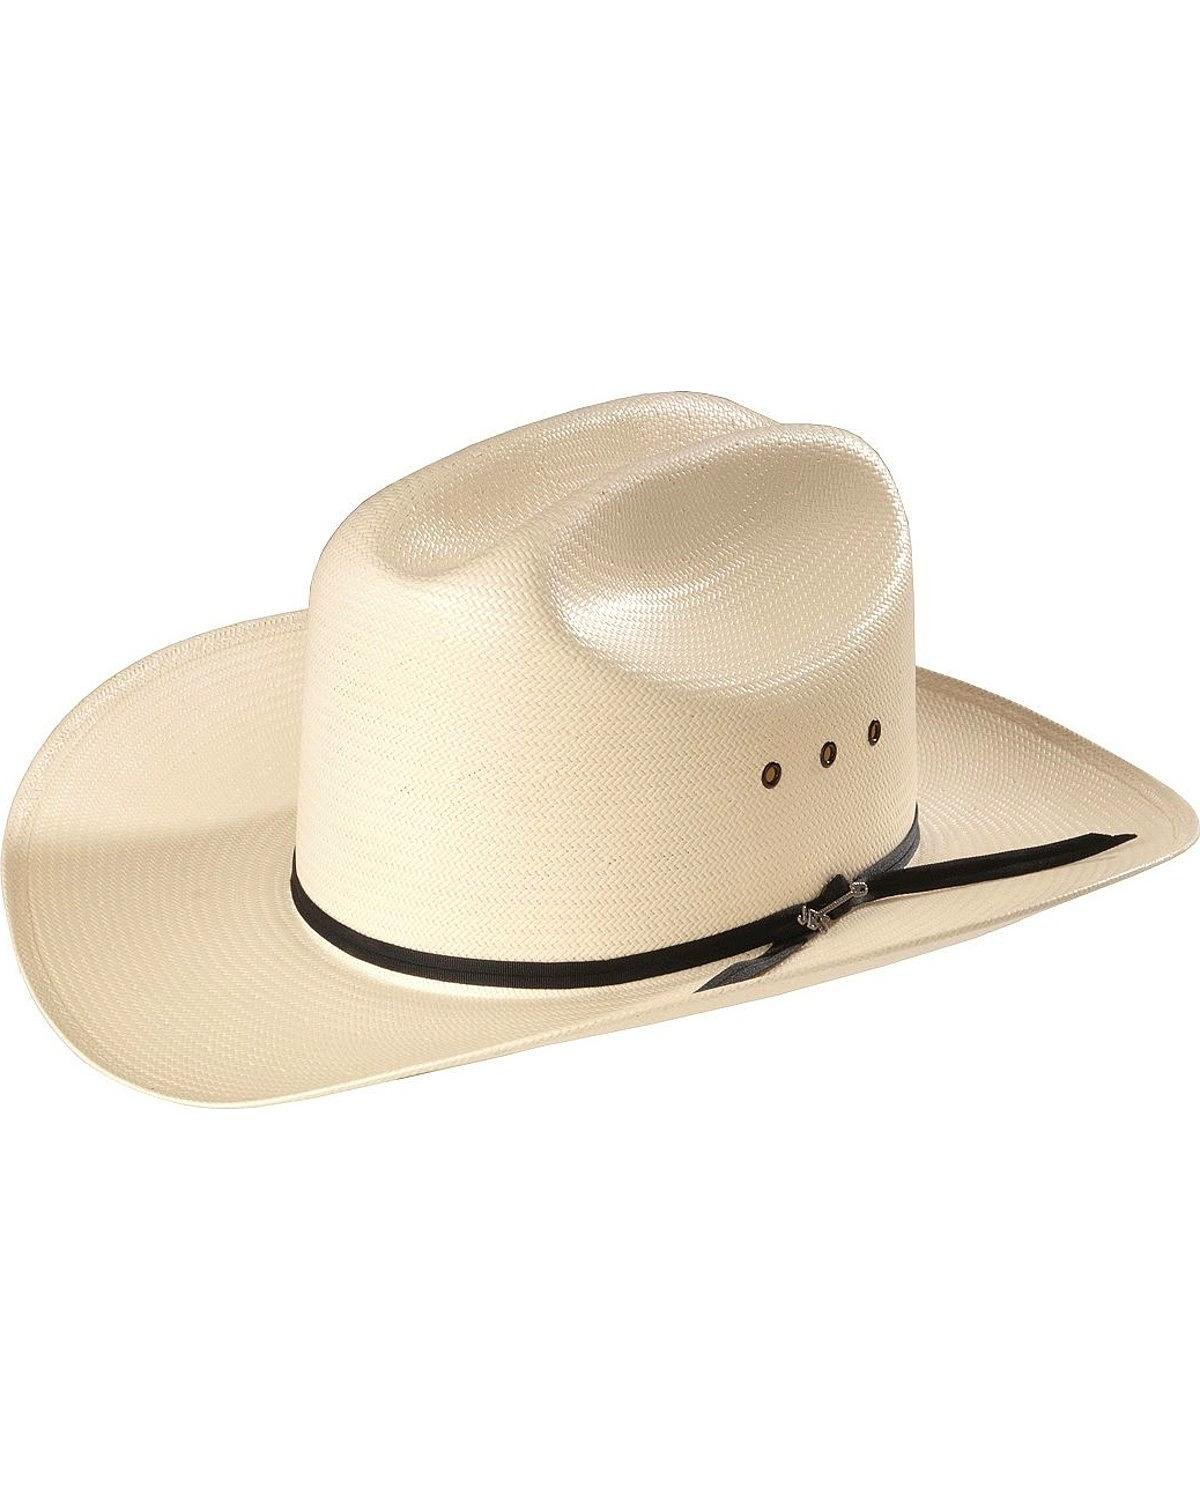 Stetson Men's Rancher Straw Cowboy Hat Natural 7 1/4